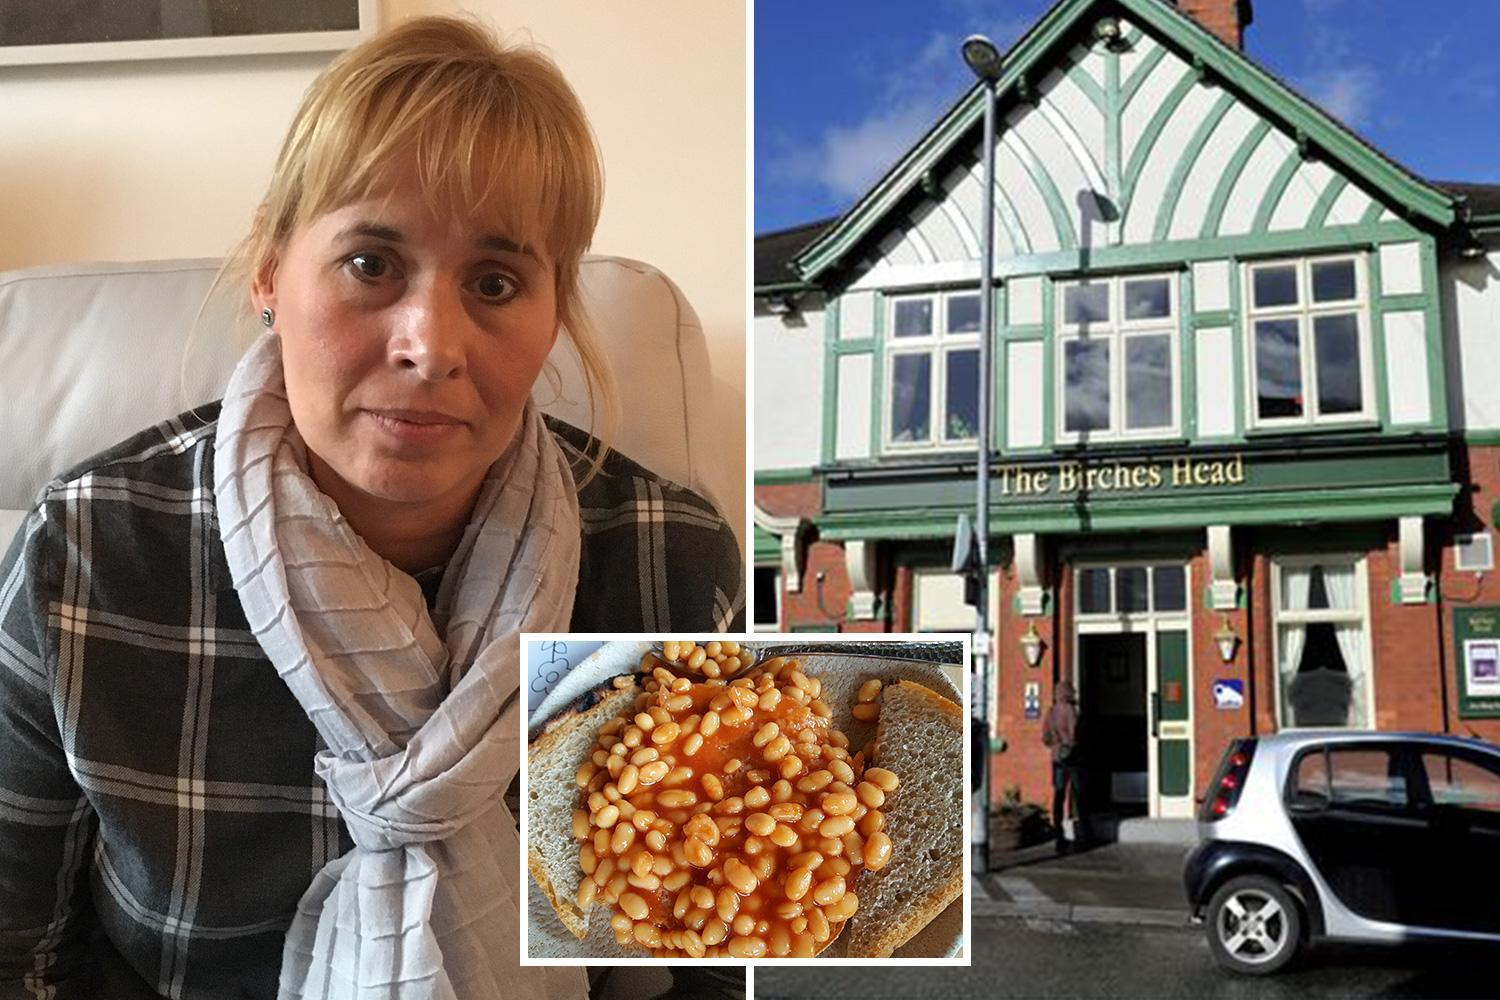 Family forced to have beans on toast for Christmas dinner after 90-minute wait to be served at pub sparks walk-out